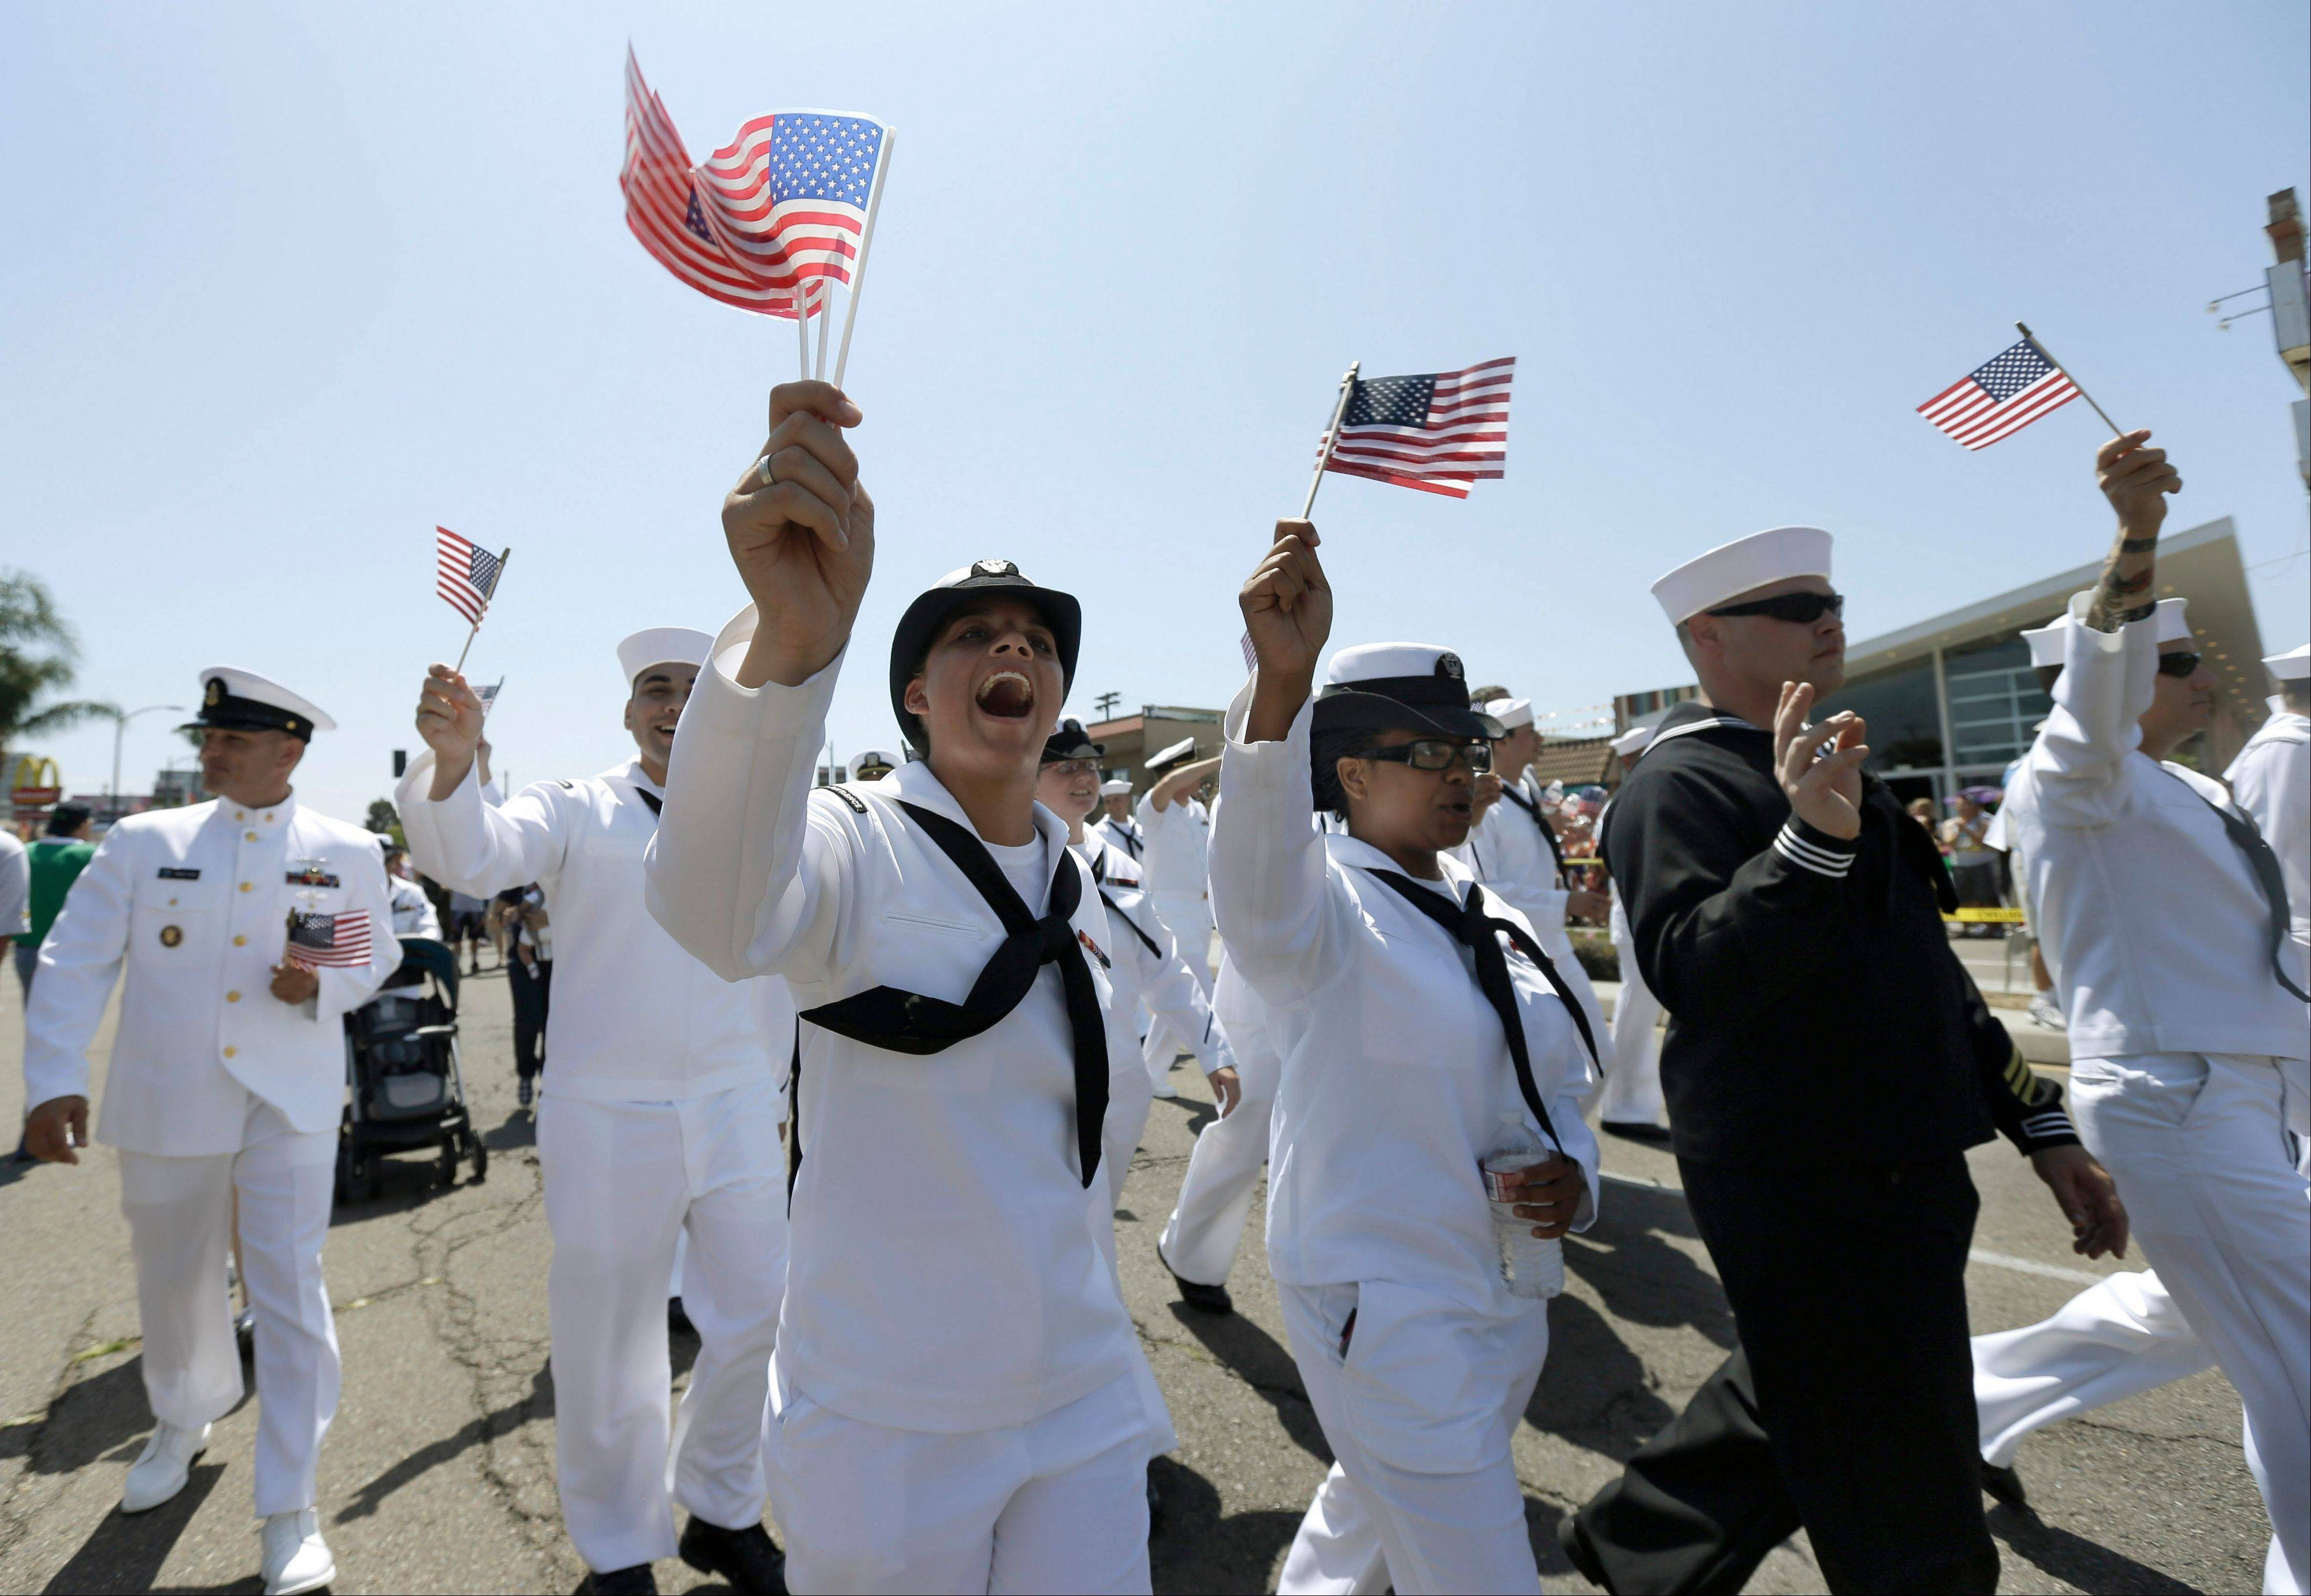 Sailors marched in uniform during a gay pride parade in San Diego on July 21, the first time U.S. service members had done so.